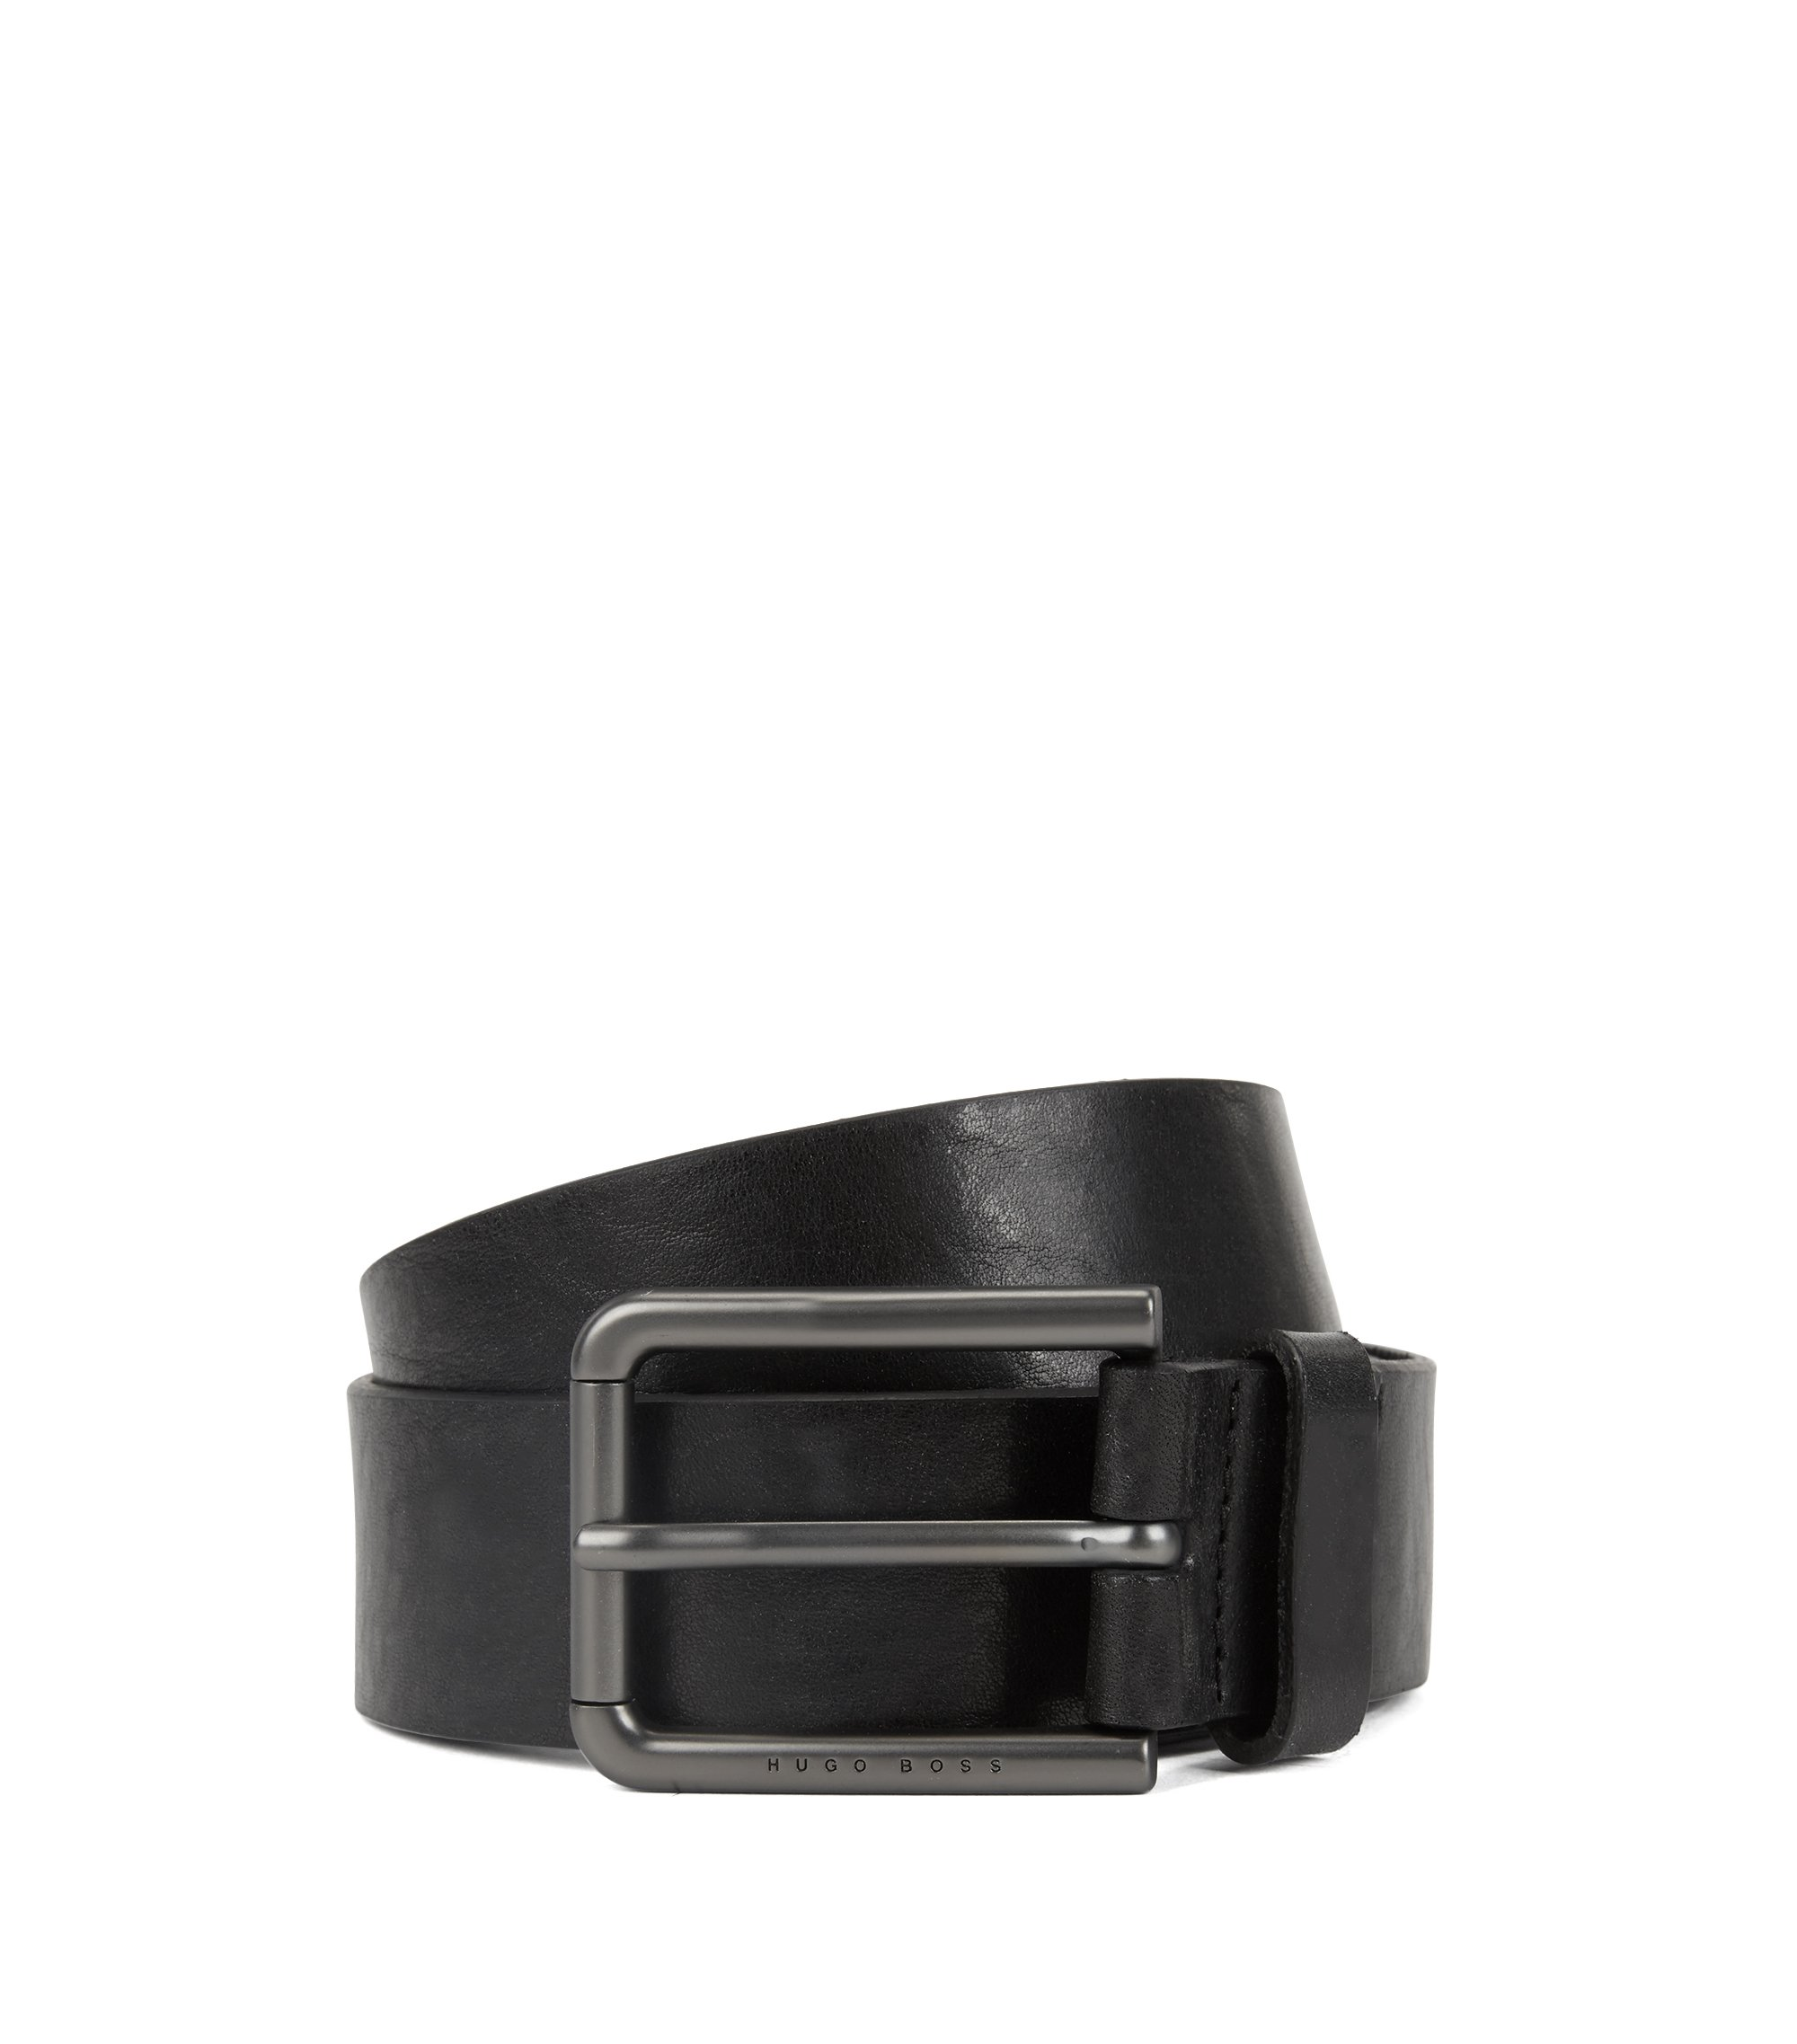 Italian leather belt with gunmetal roller buckle, Black